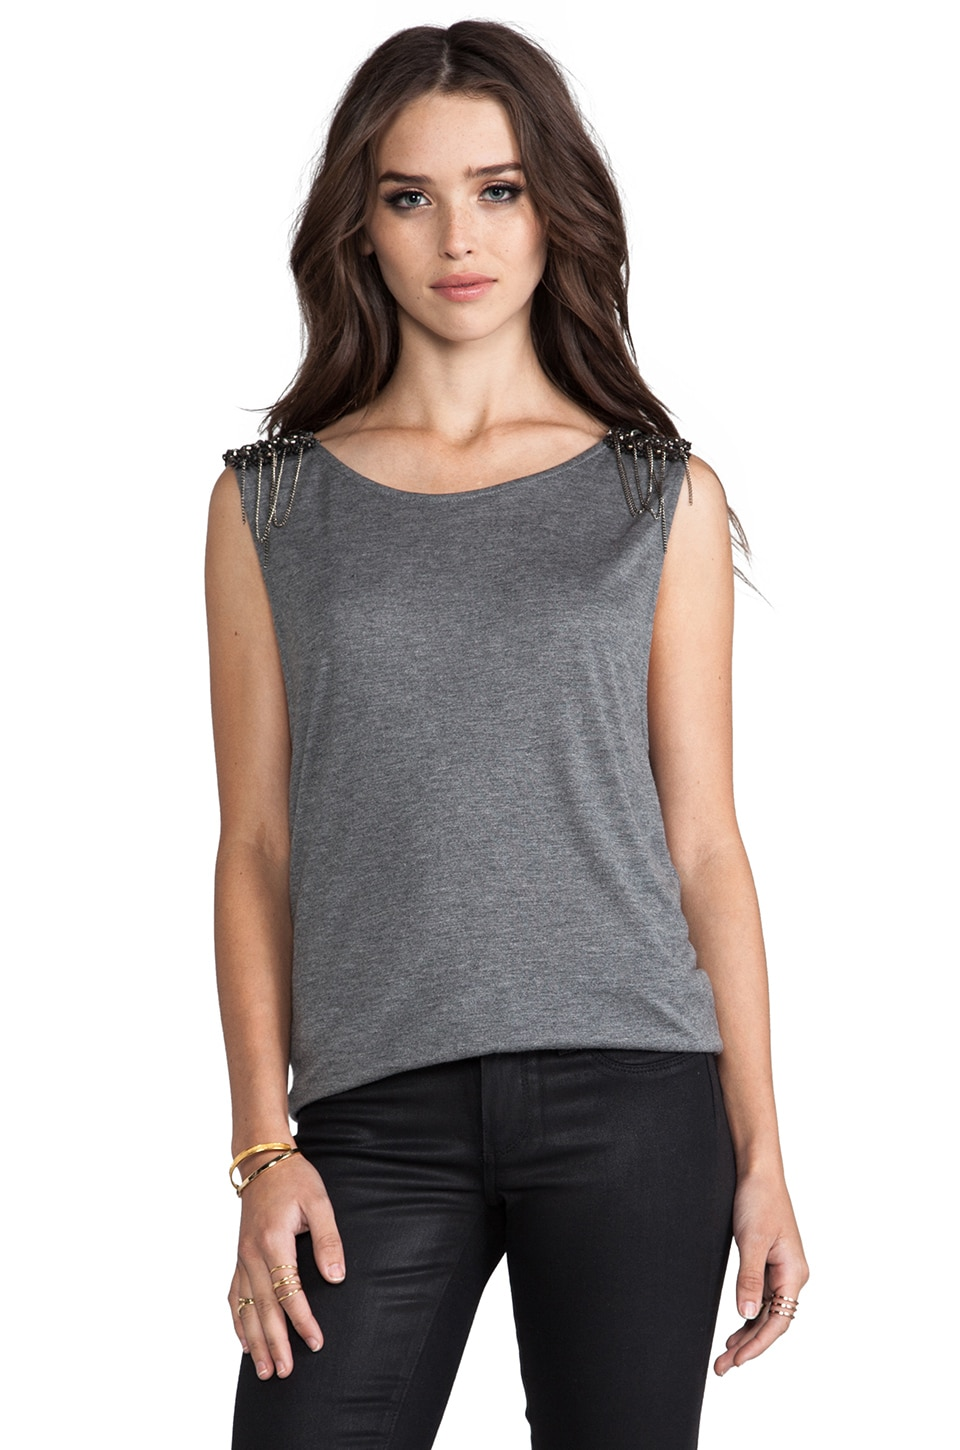 Haute Hippie Muscle Tee with Embellished Shoulders in Charcoal Grey